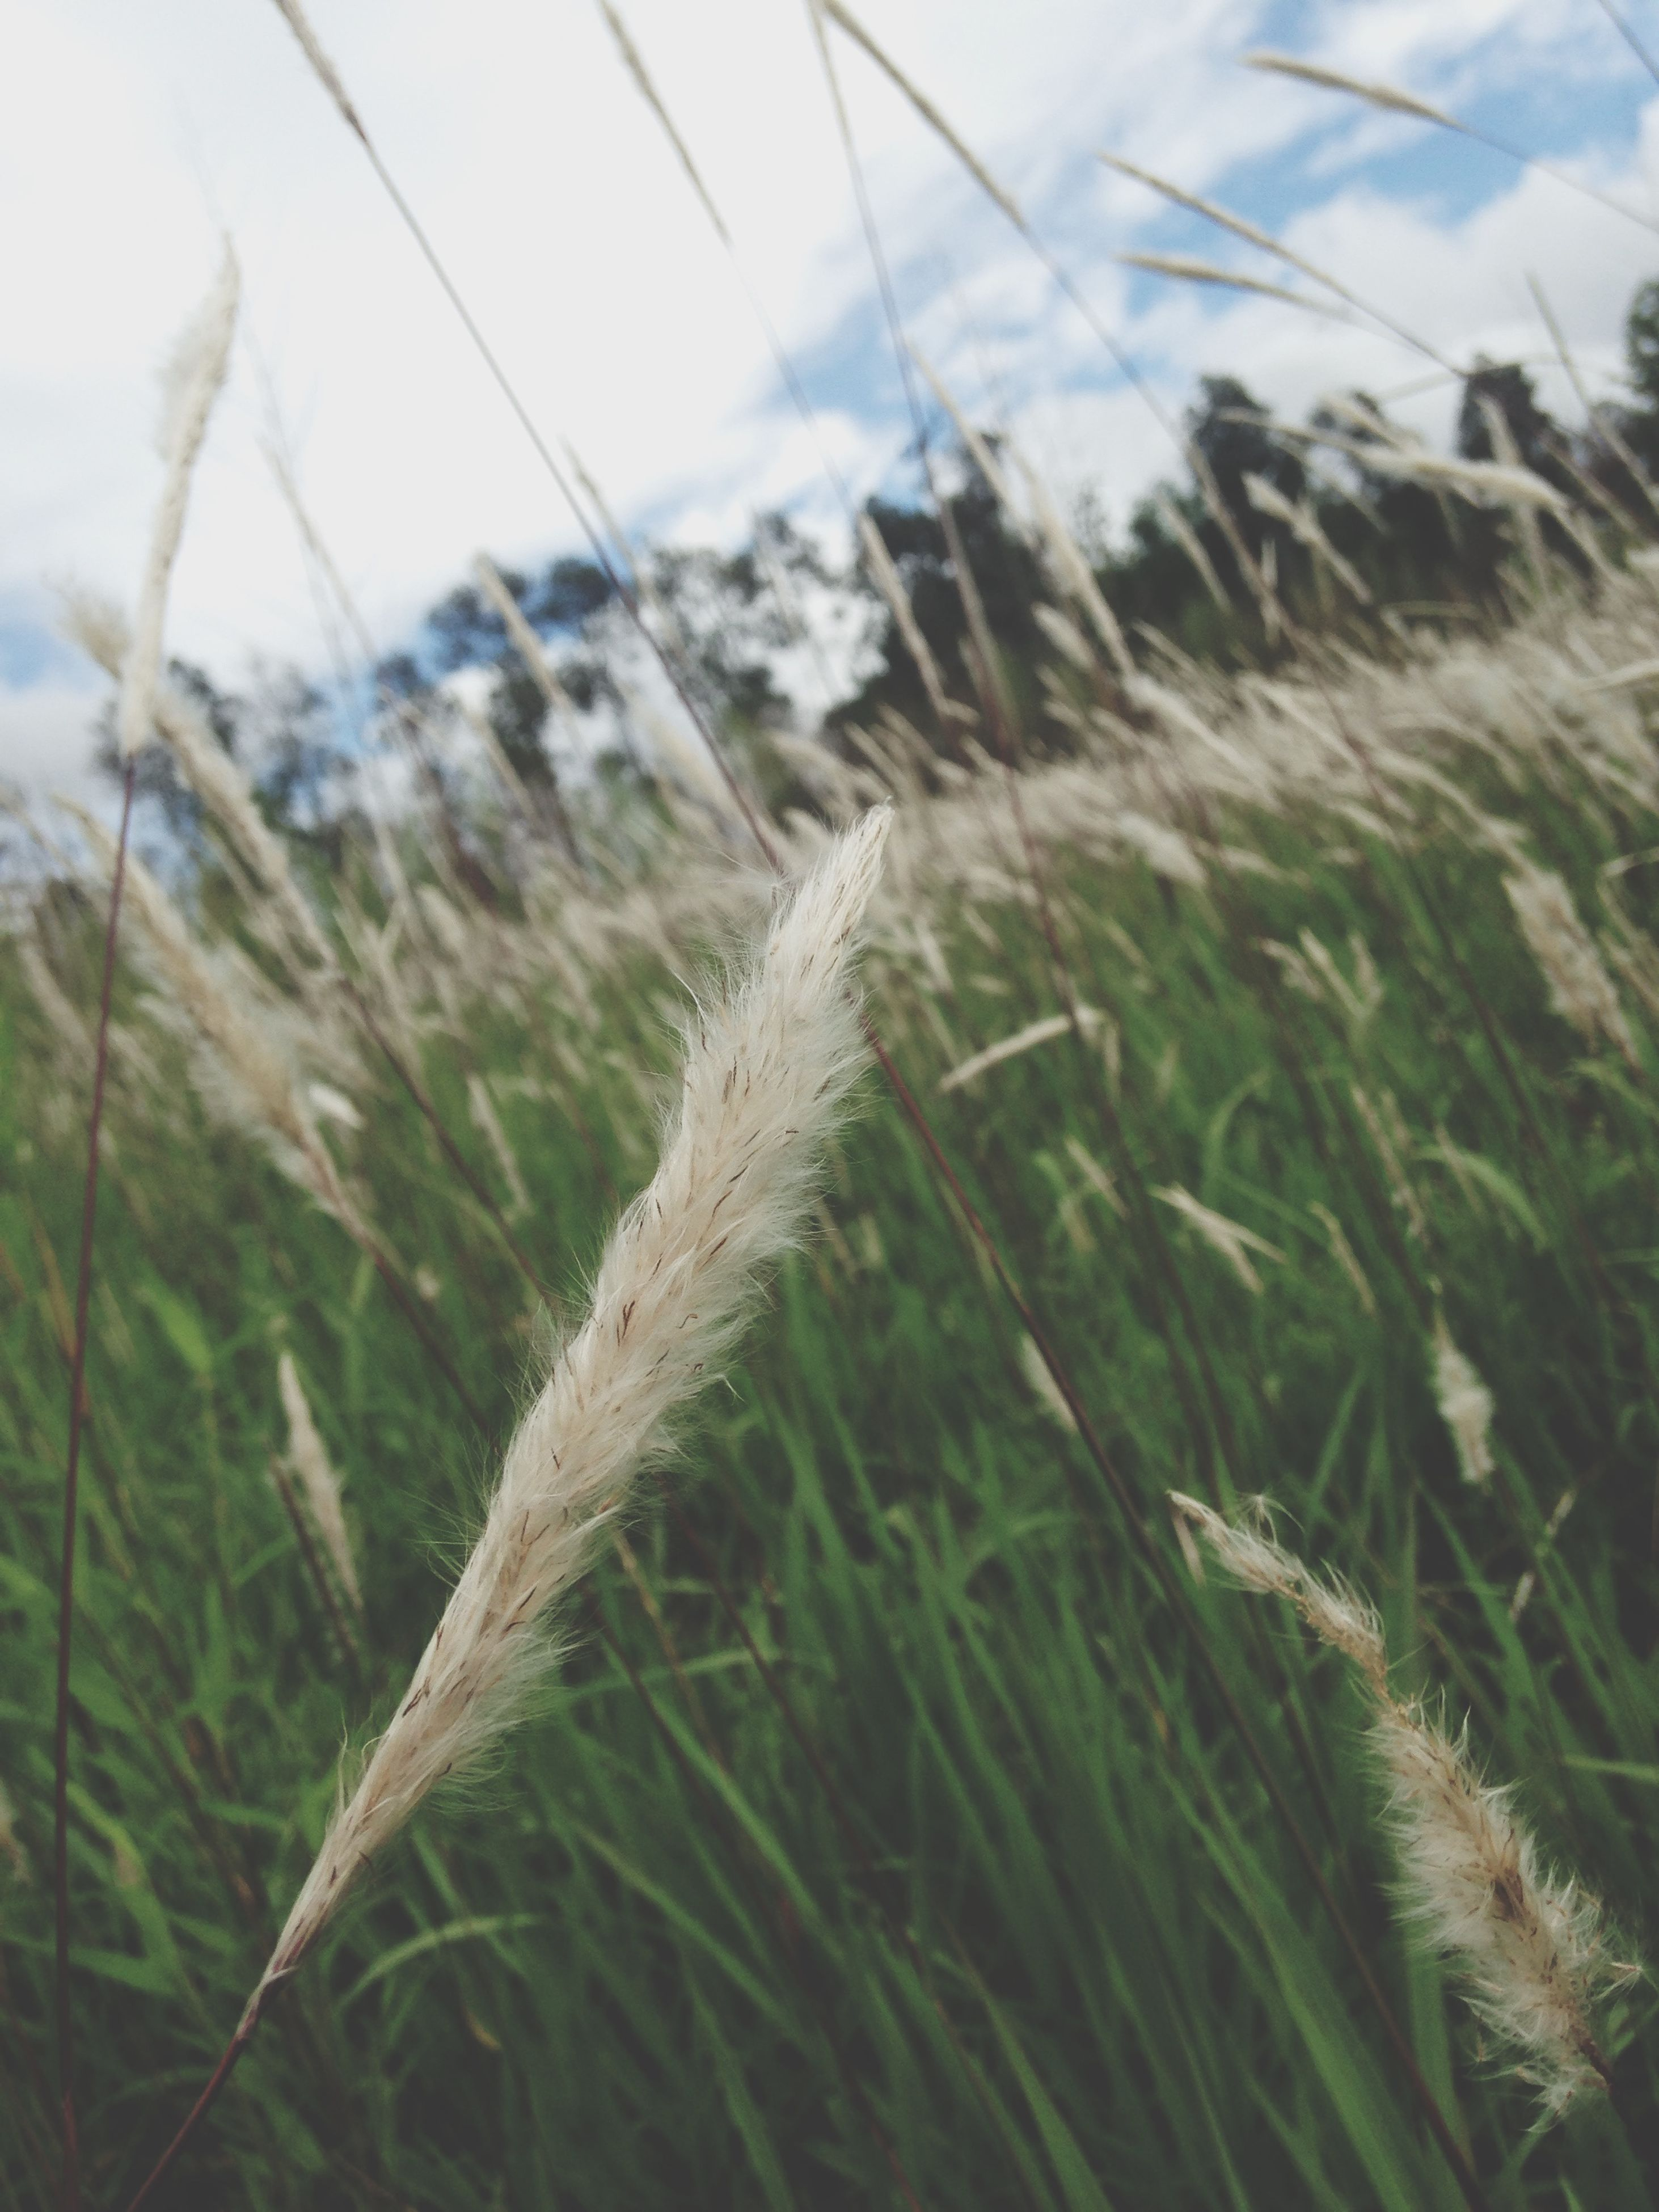 grass, field, focus on foreground, growth, plant, nature, close-up, tranquility, sky, selective focus, landscape, day, beauty in nature, outdoors, no people, tranquil scene, weather, growing, rural scene, scenics